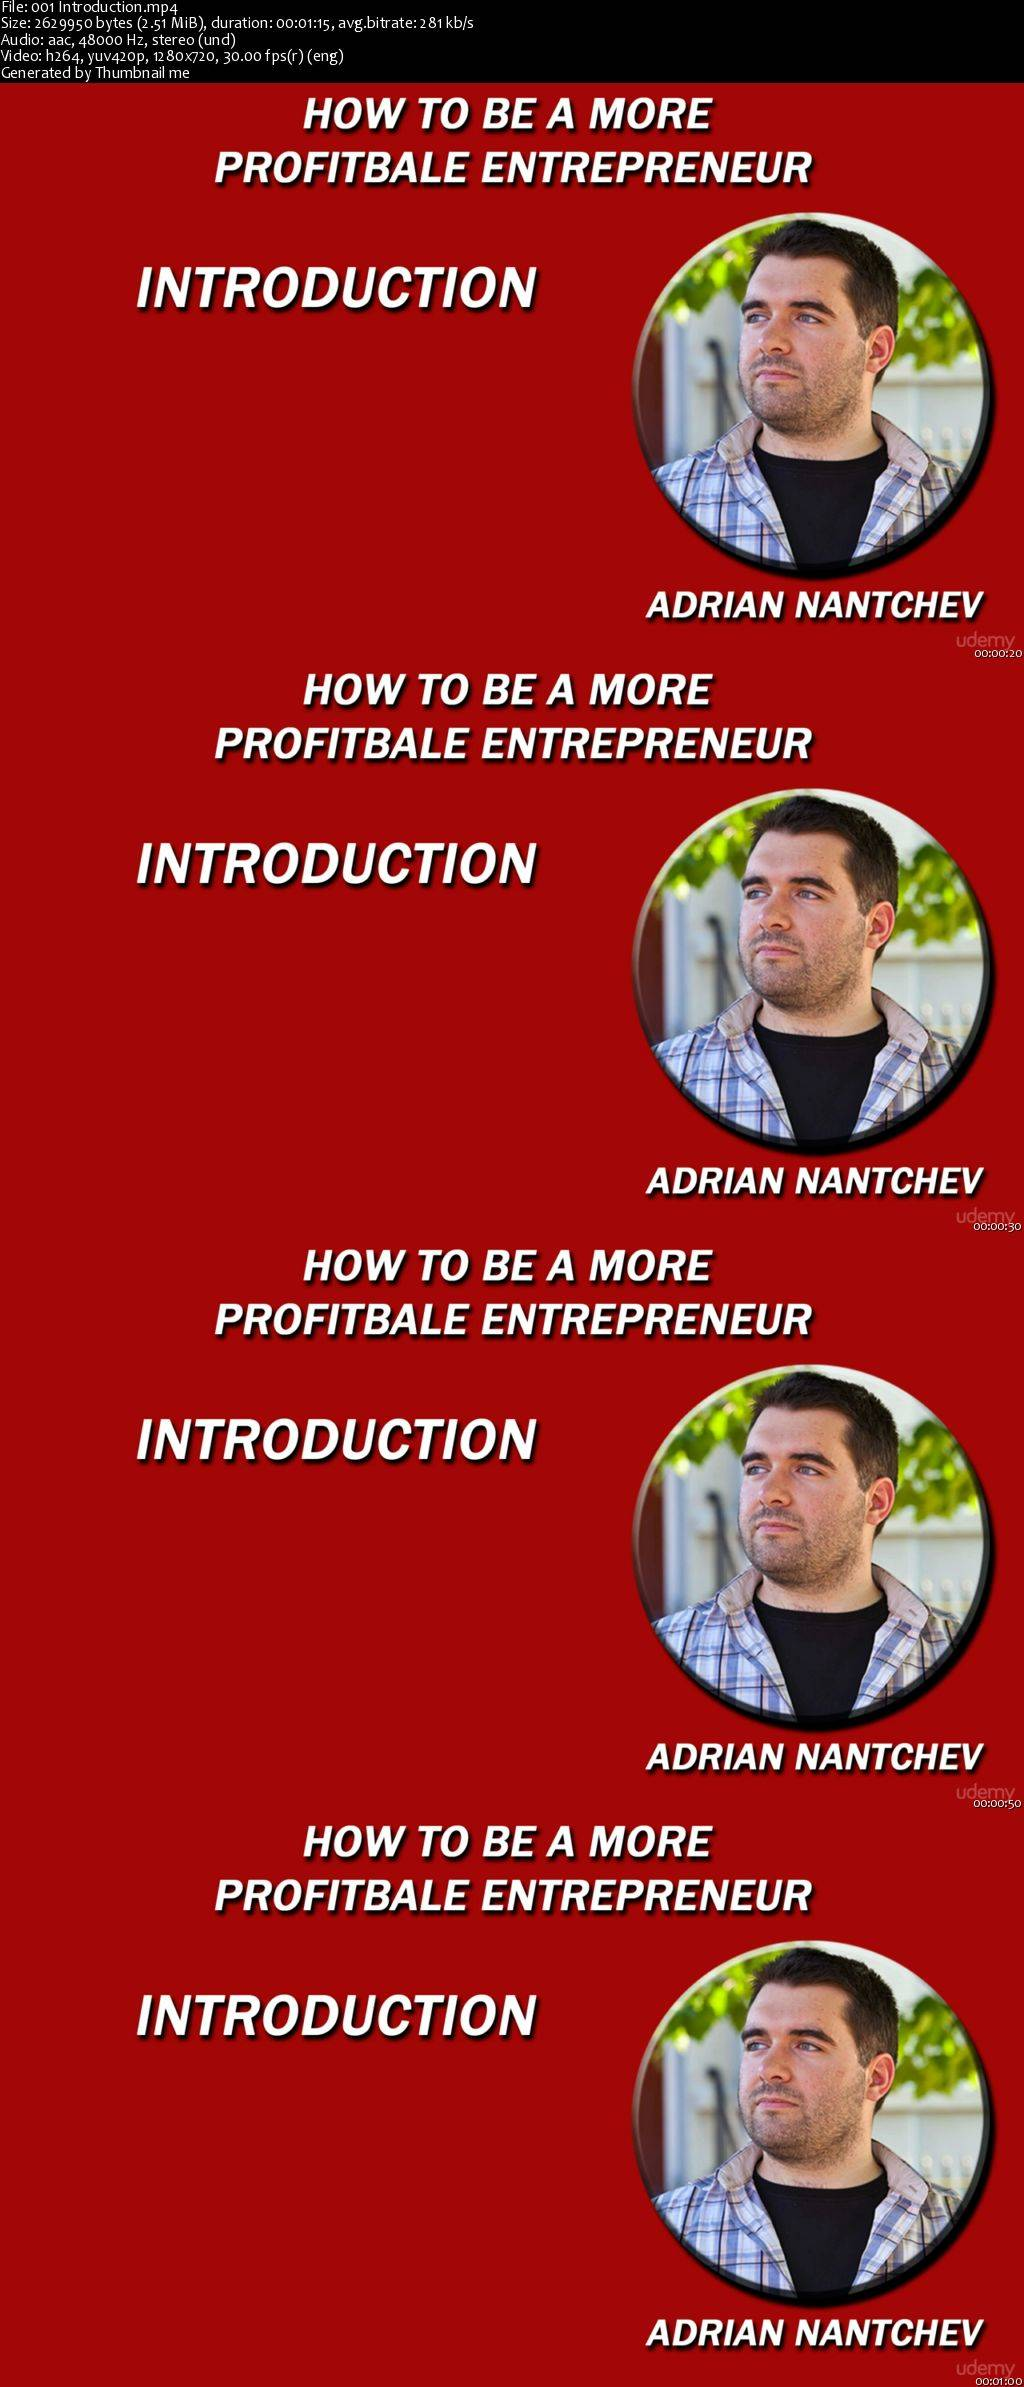 How to be a more profitable entrepreneur